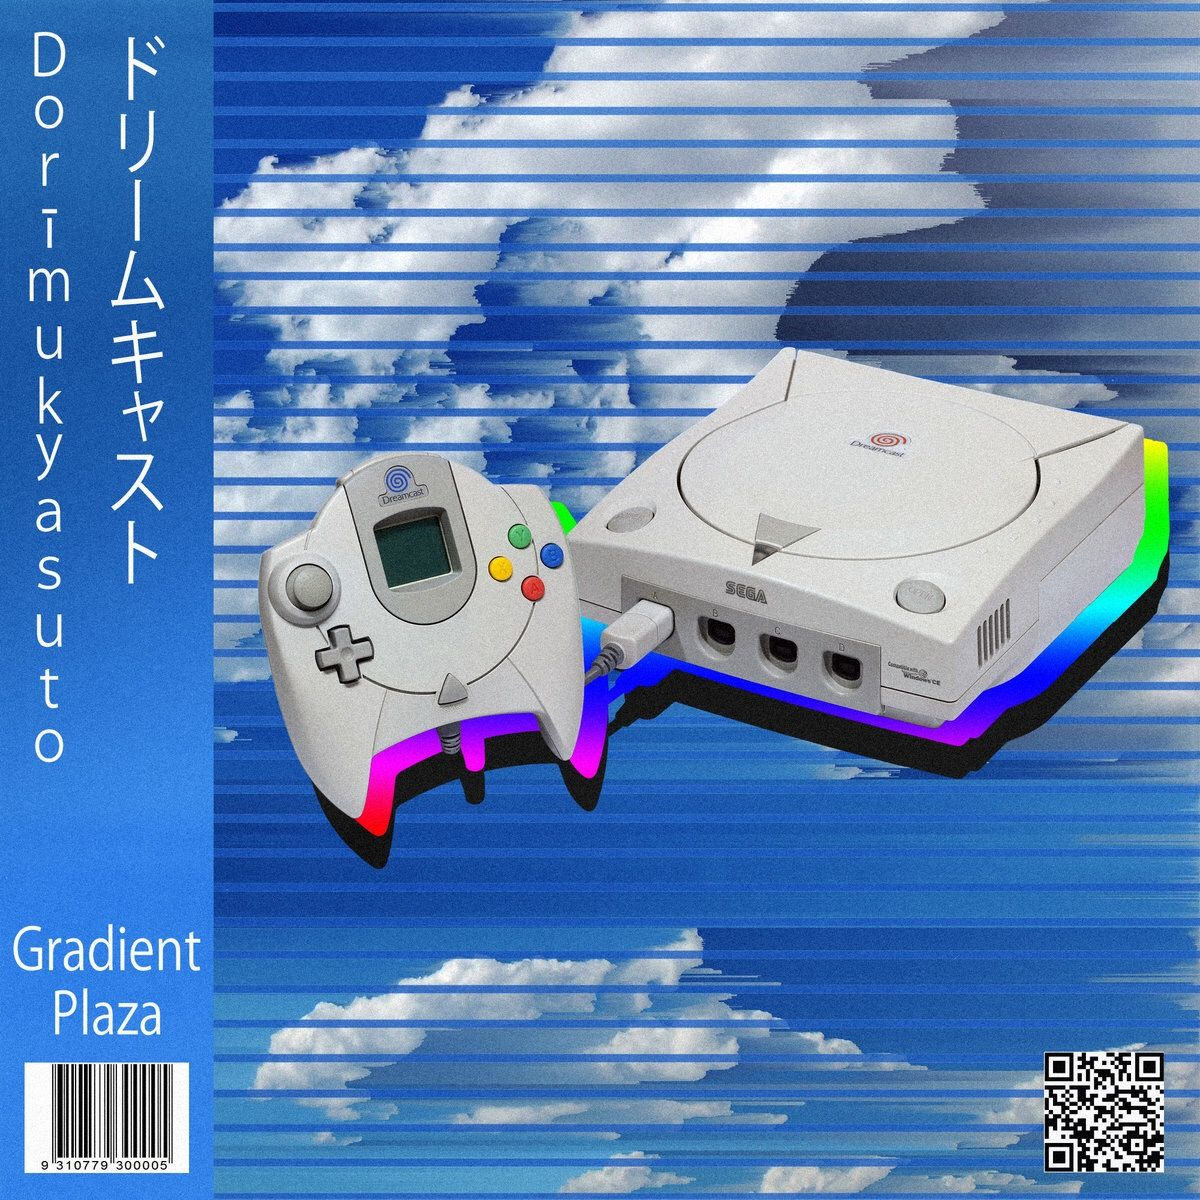 Blaze Has A Dreamcast And That S Important Information Vaporwave Art Vaporwave Album Art